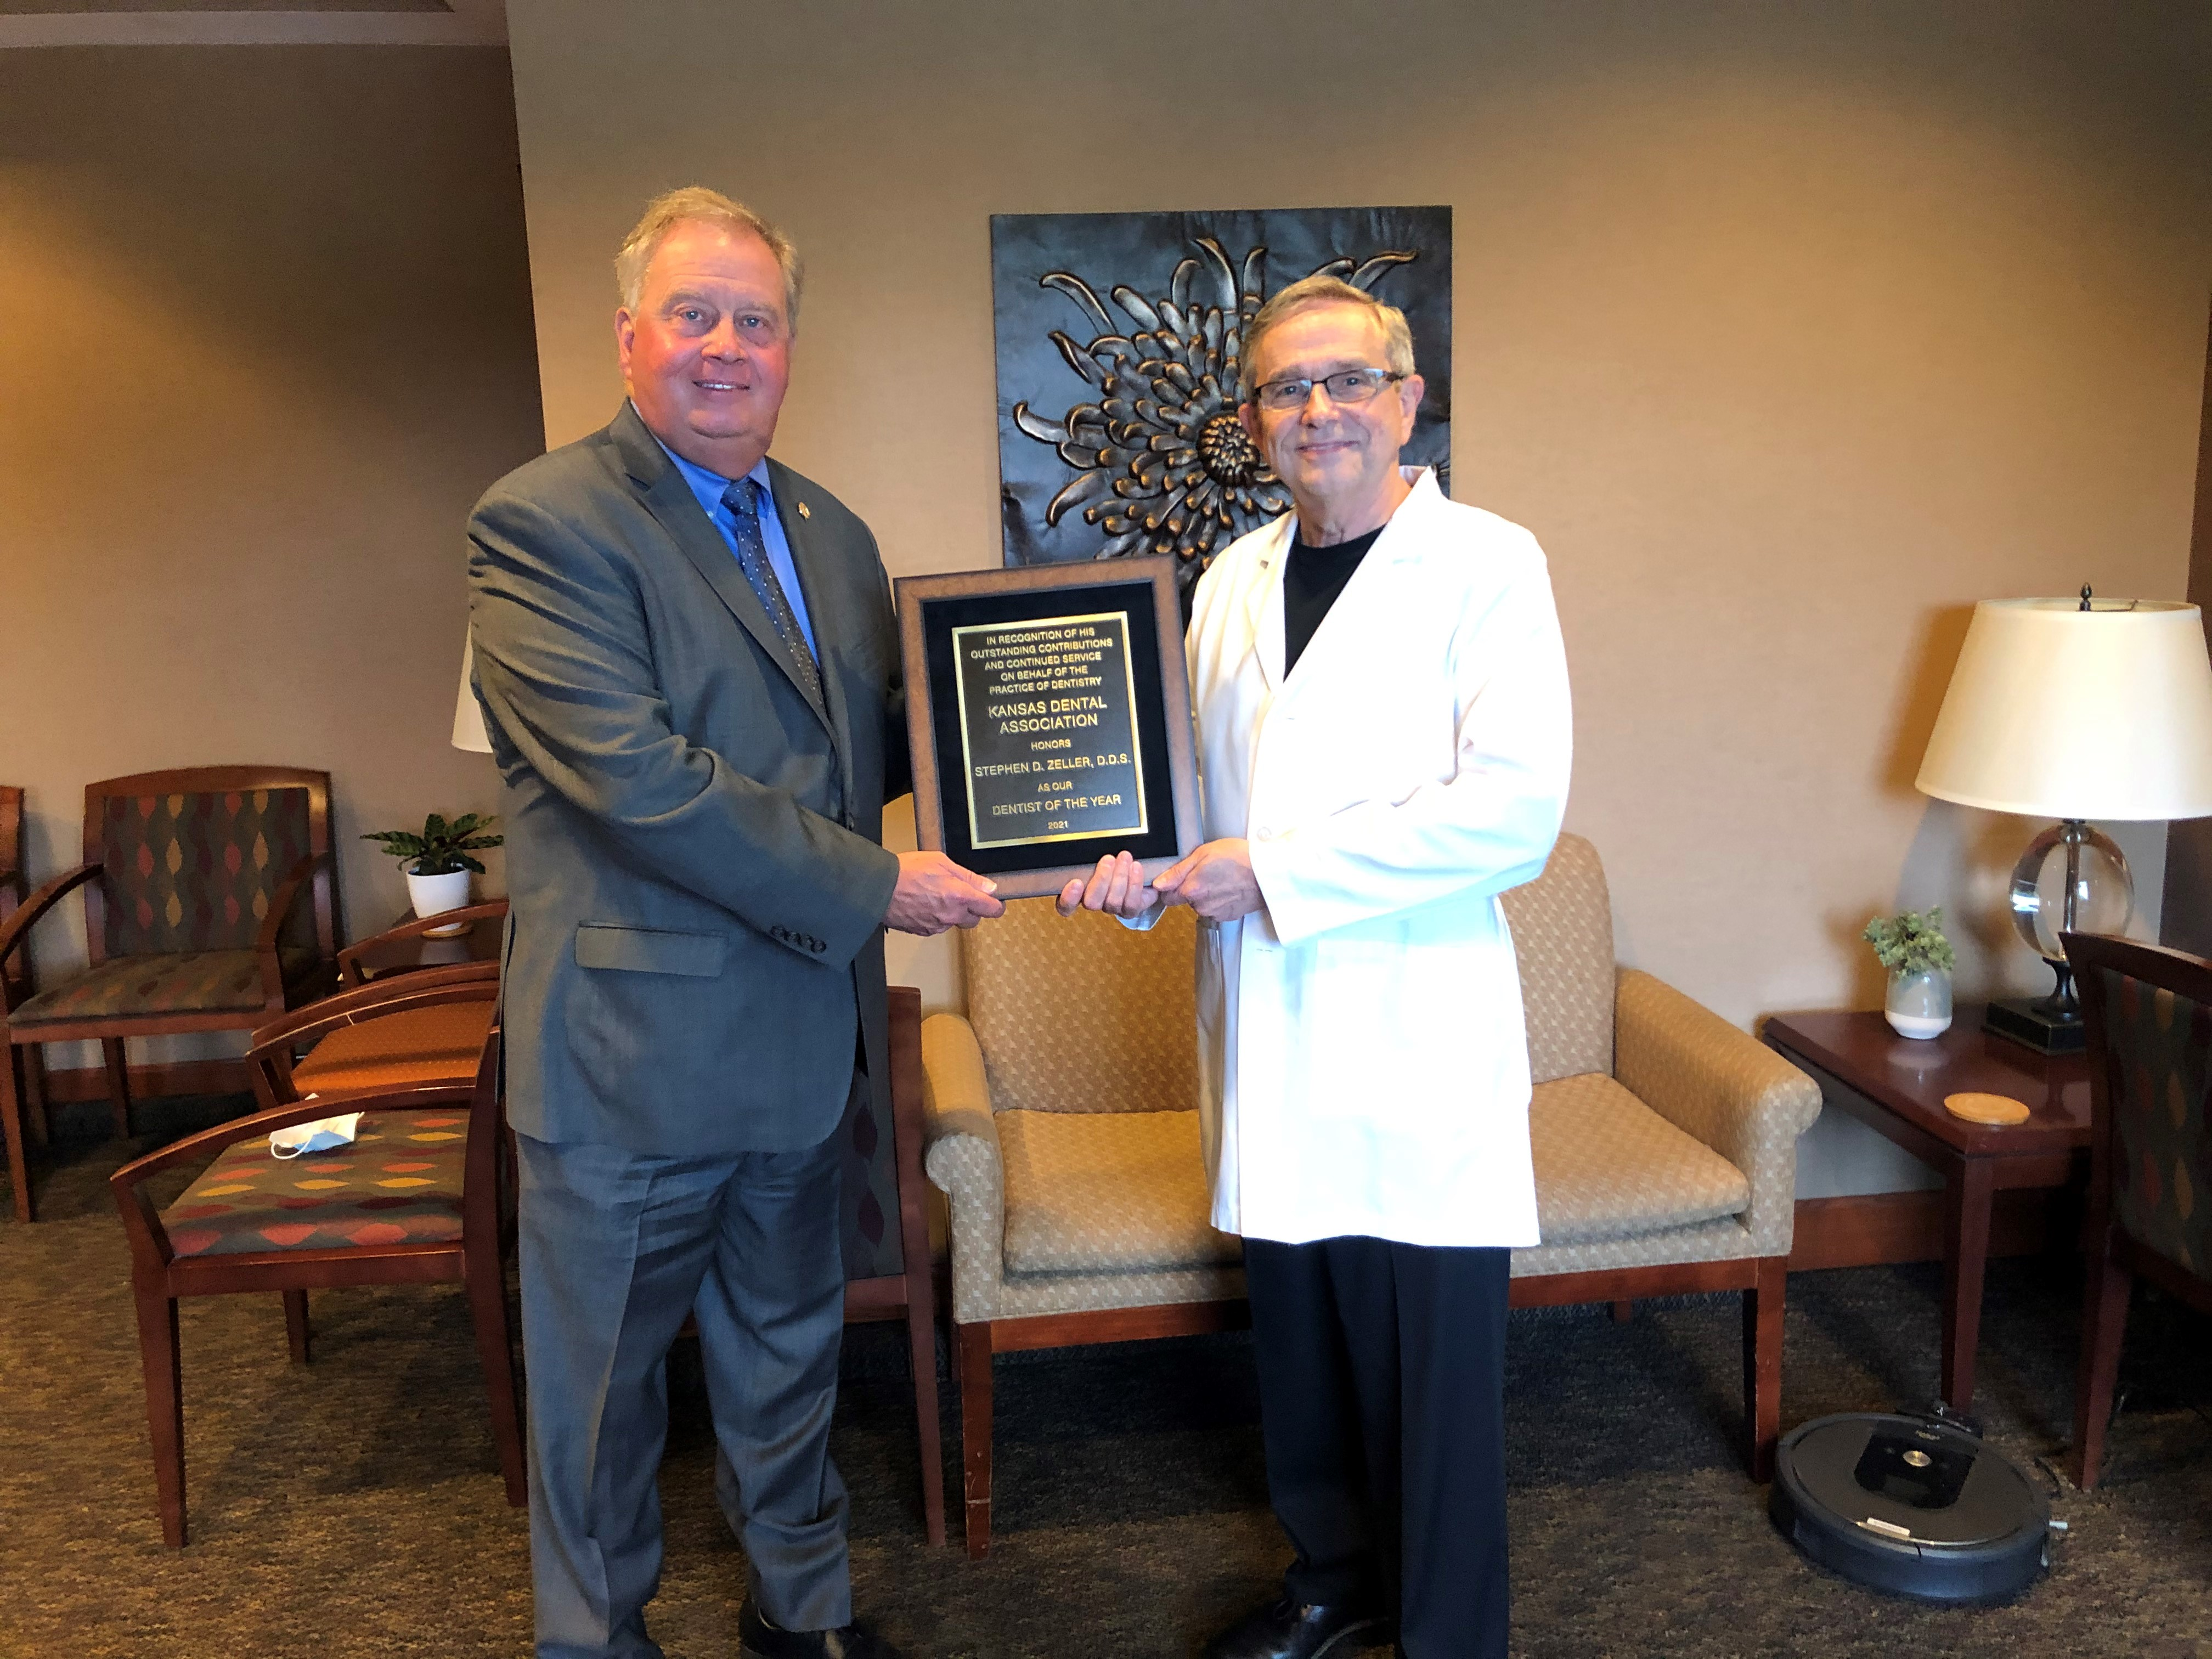 Dr. Reavis and Dr. Zeller with 2021 Dentist of the Year Plaque